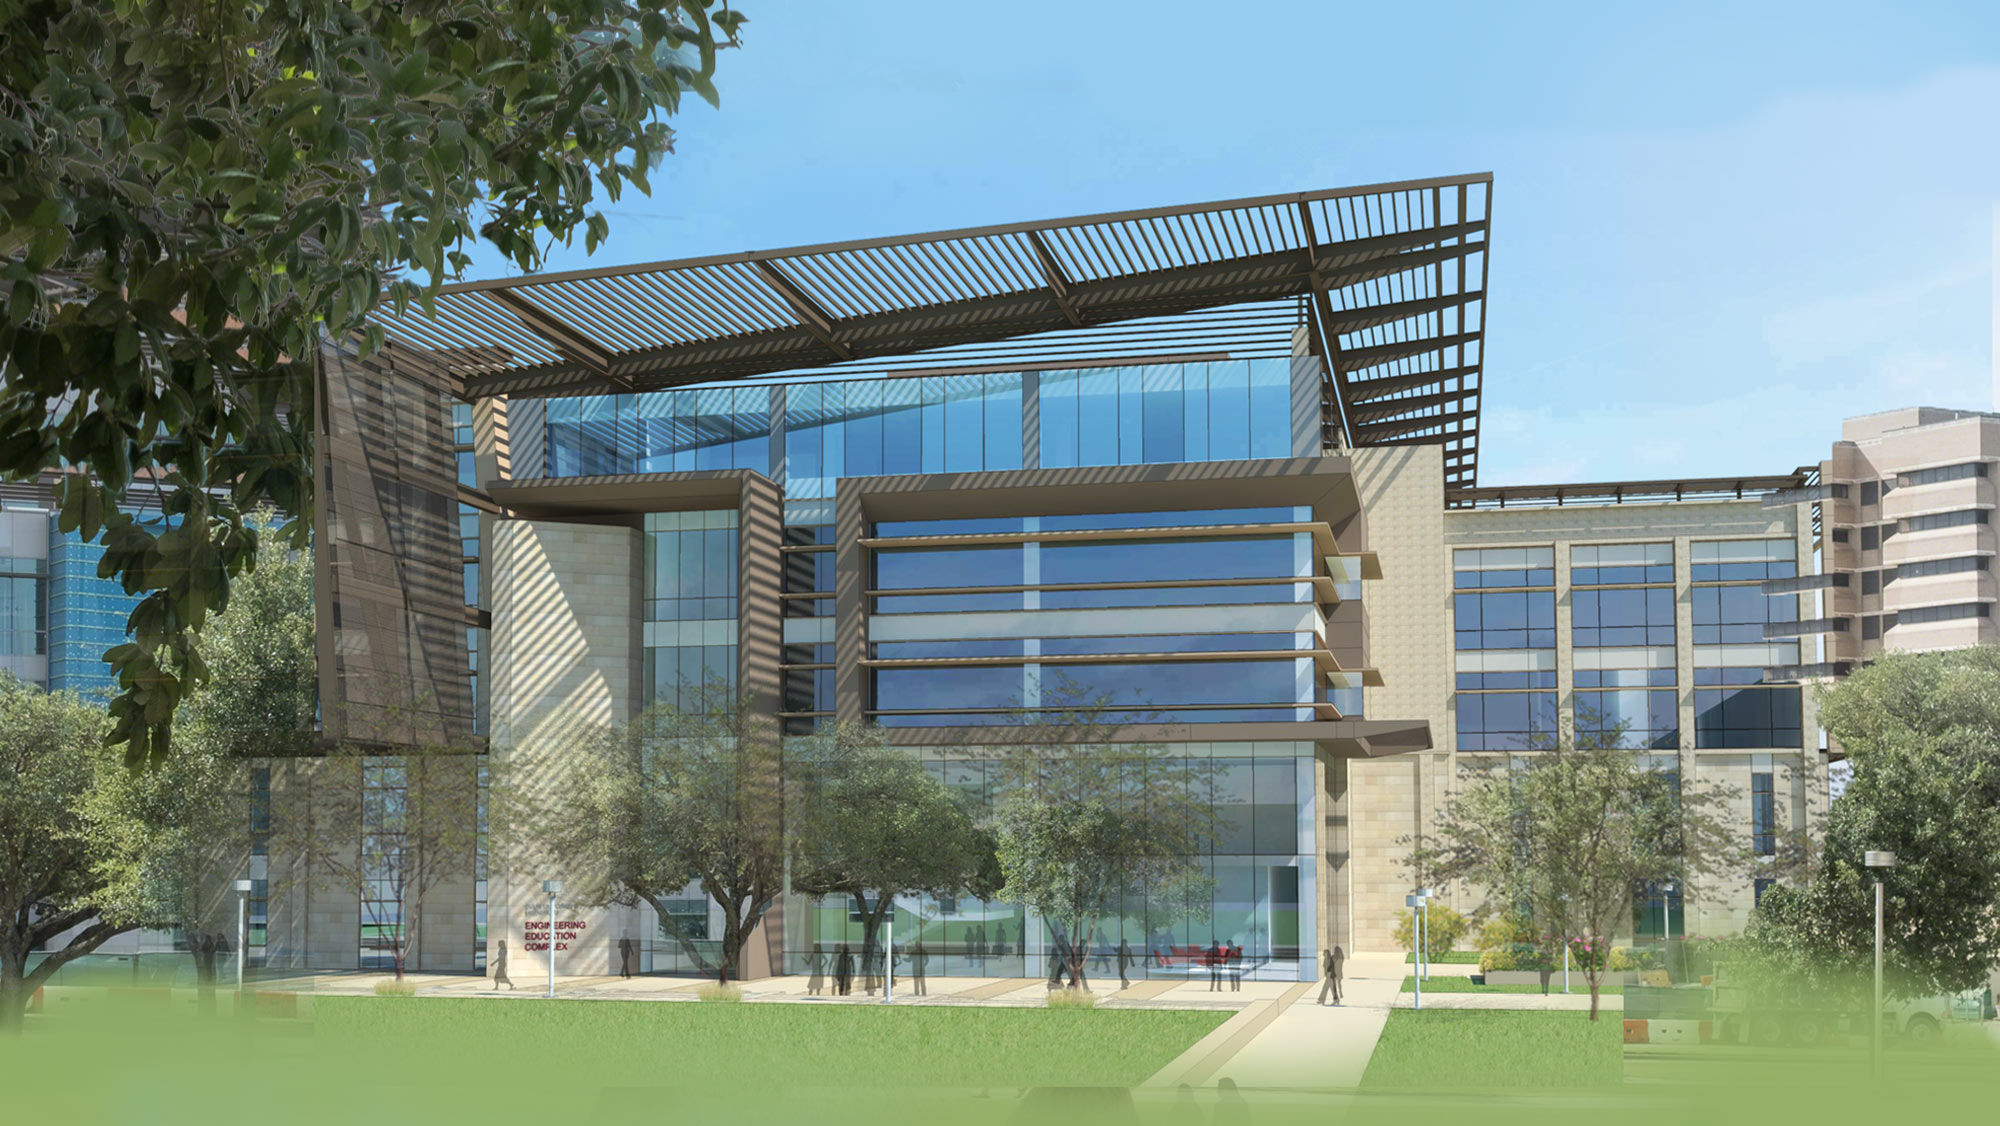 Zachry Engineering Education Complex